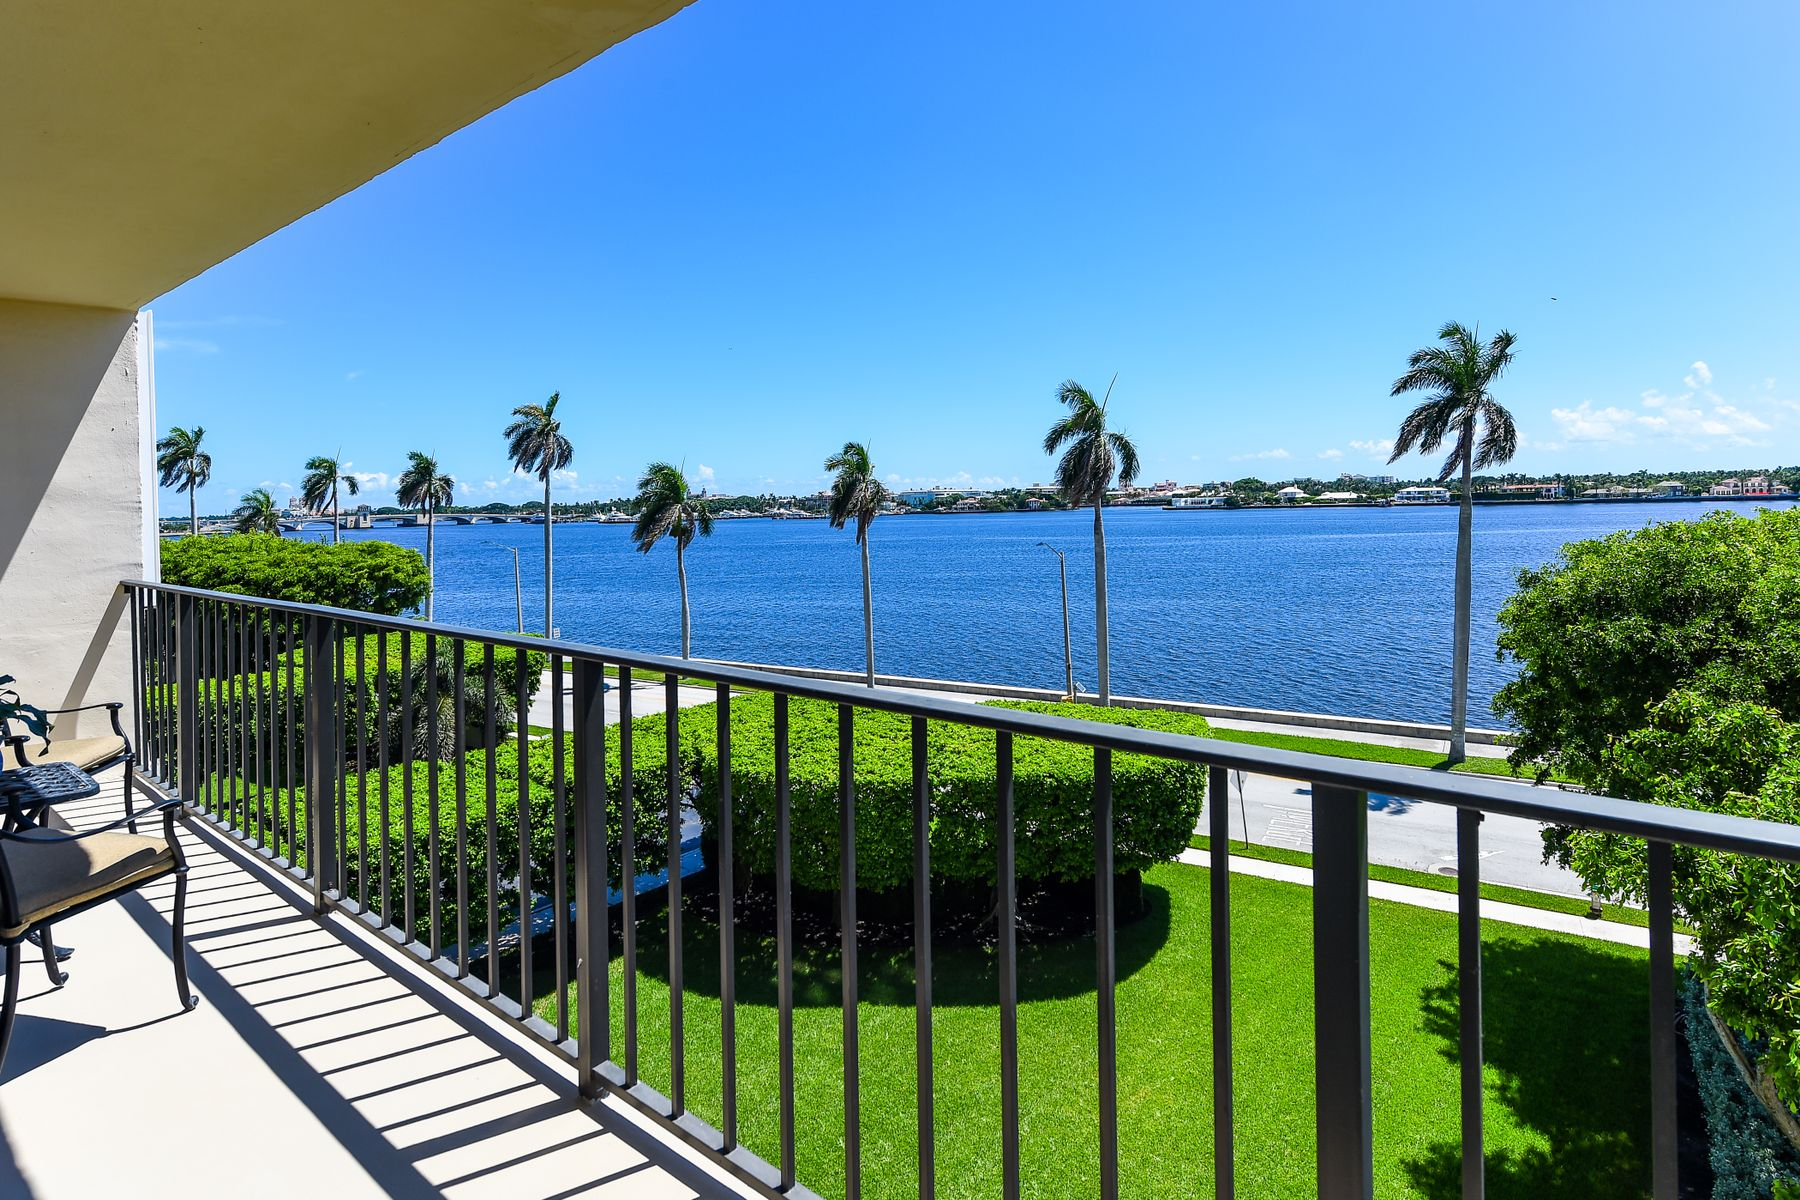 Condominium for Sale at Stunning Direct Intracoastal Condo 1801 S Flagler Drive 402 West Palm Beach, Florida 33401 United States